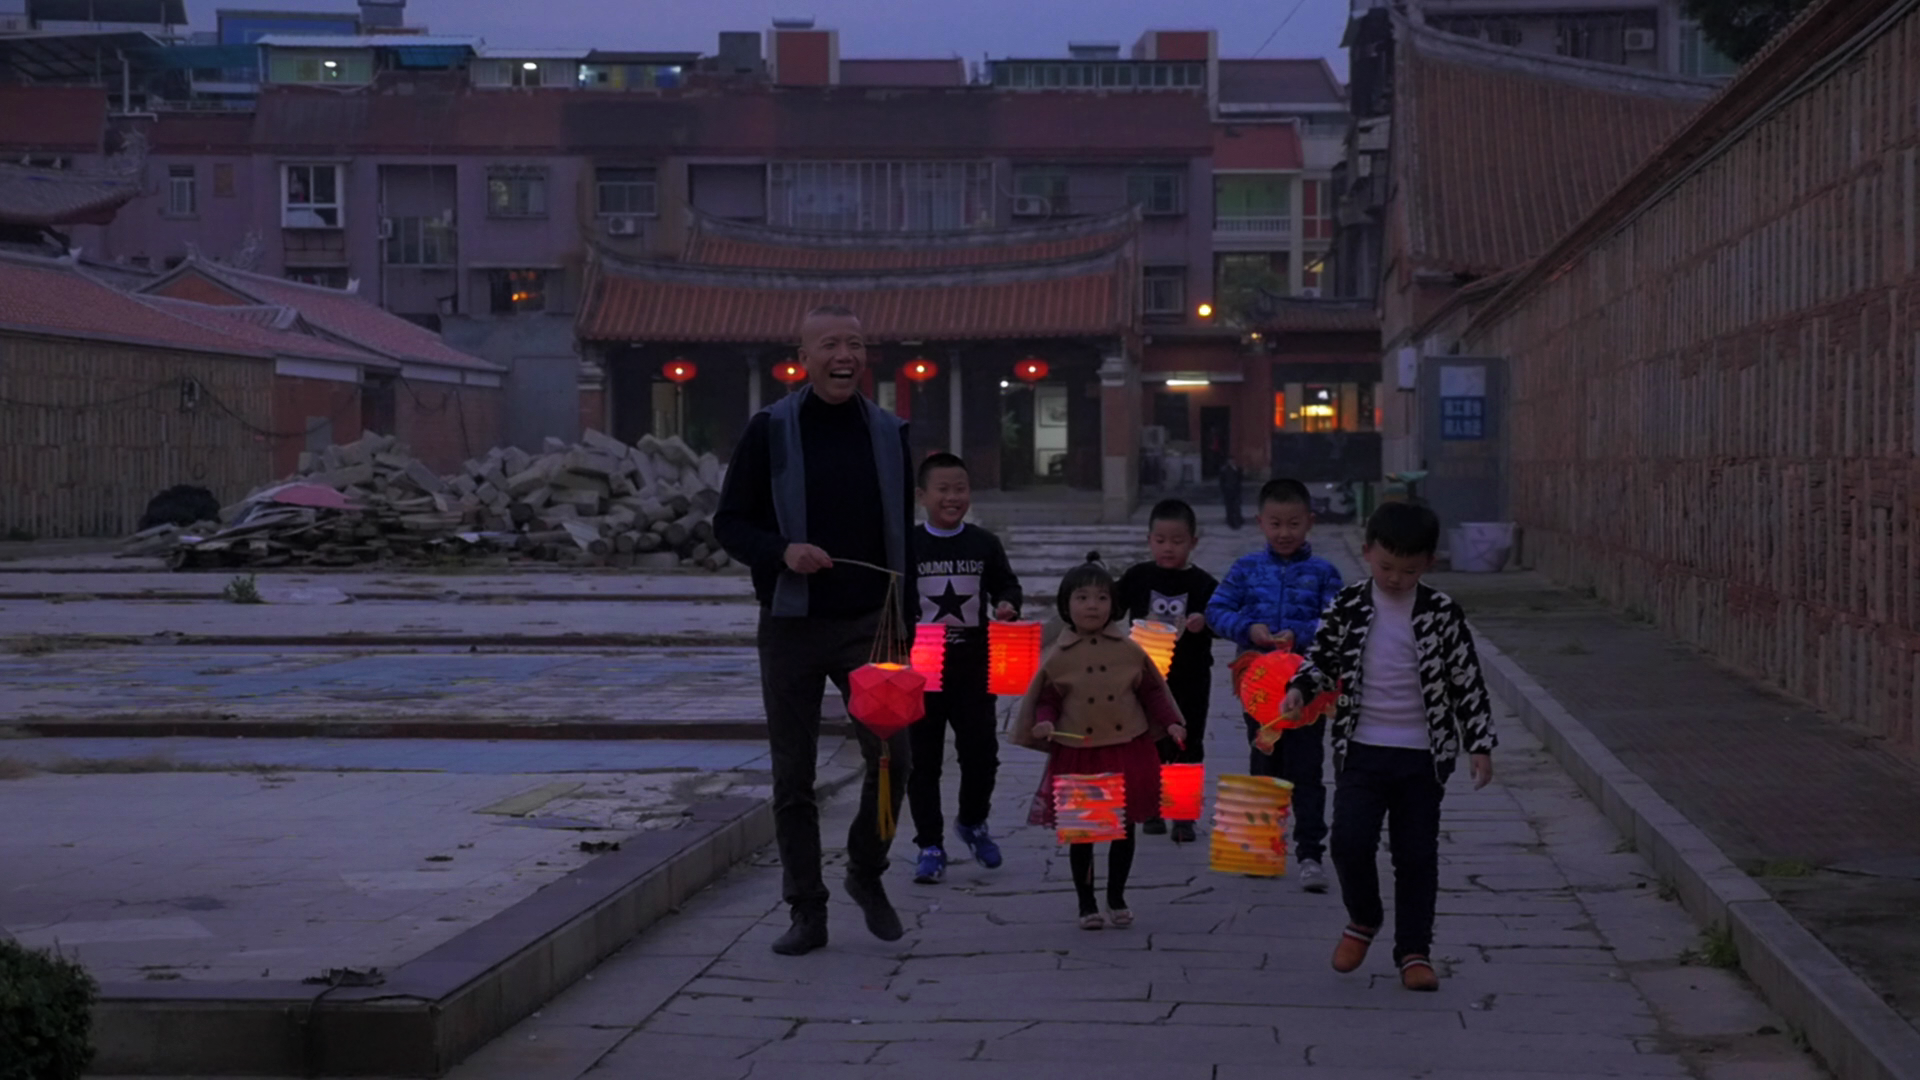 Cai Guo-Qiang with children and lanterns in Quanzhou, China